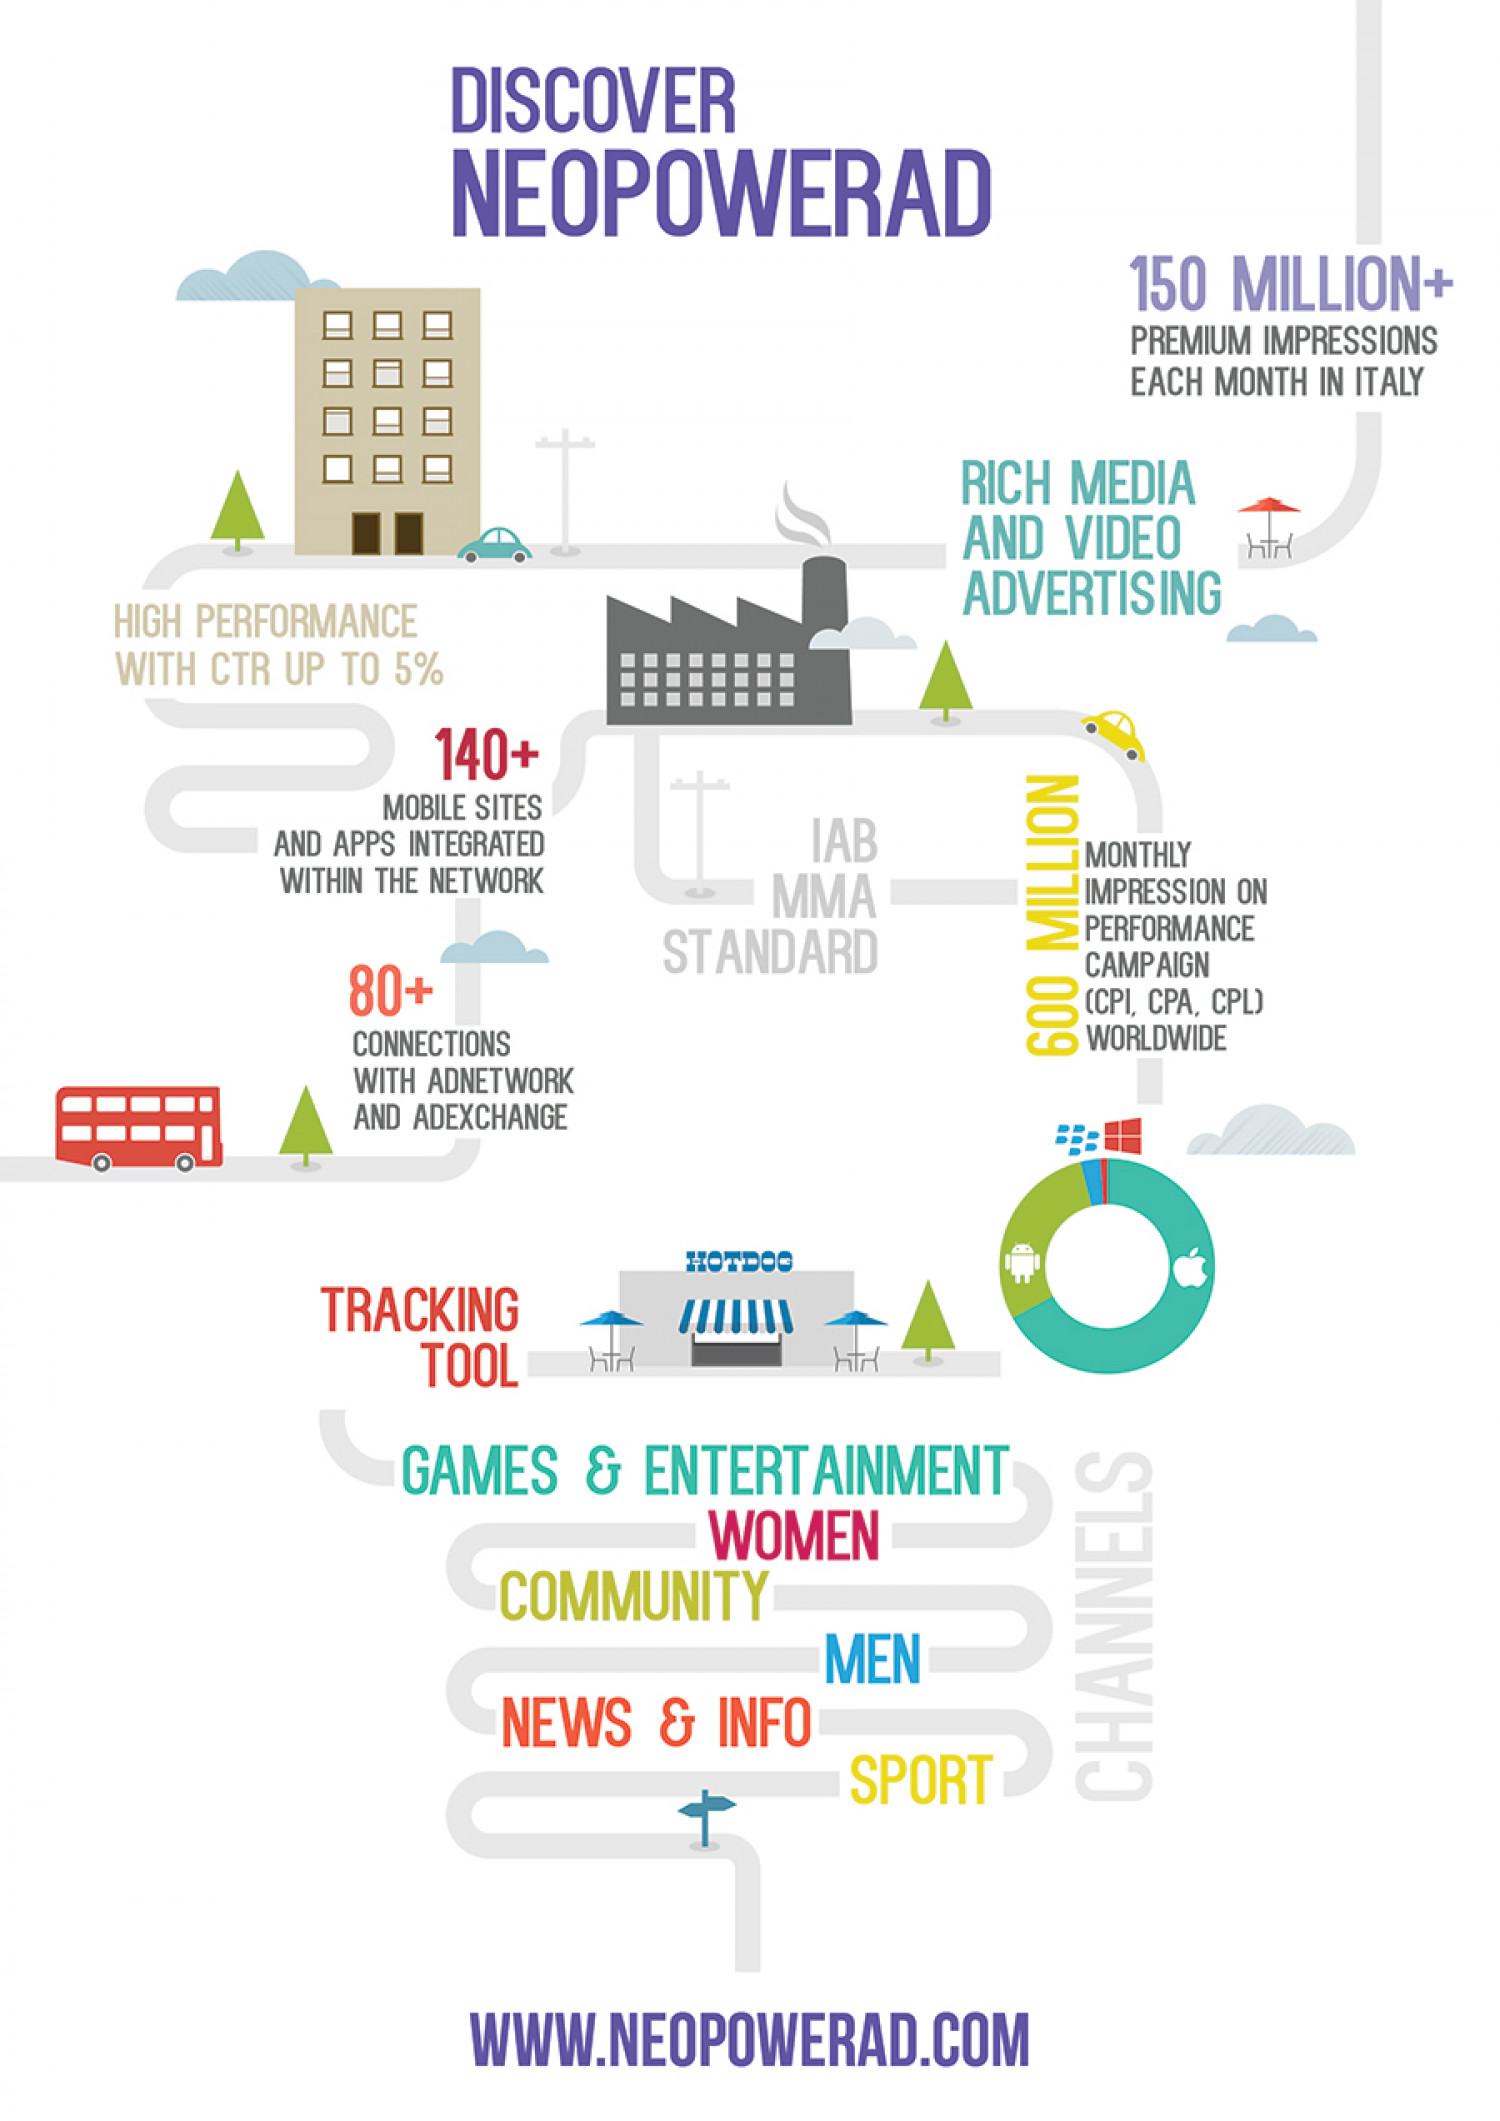 The State of Mobile Advertising - Discover NeoPowerAd Infographic